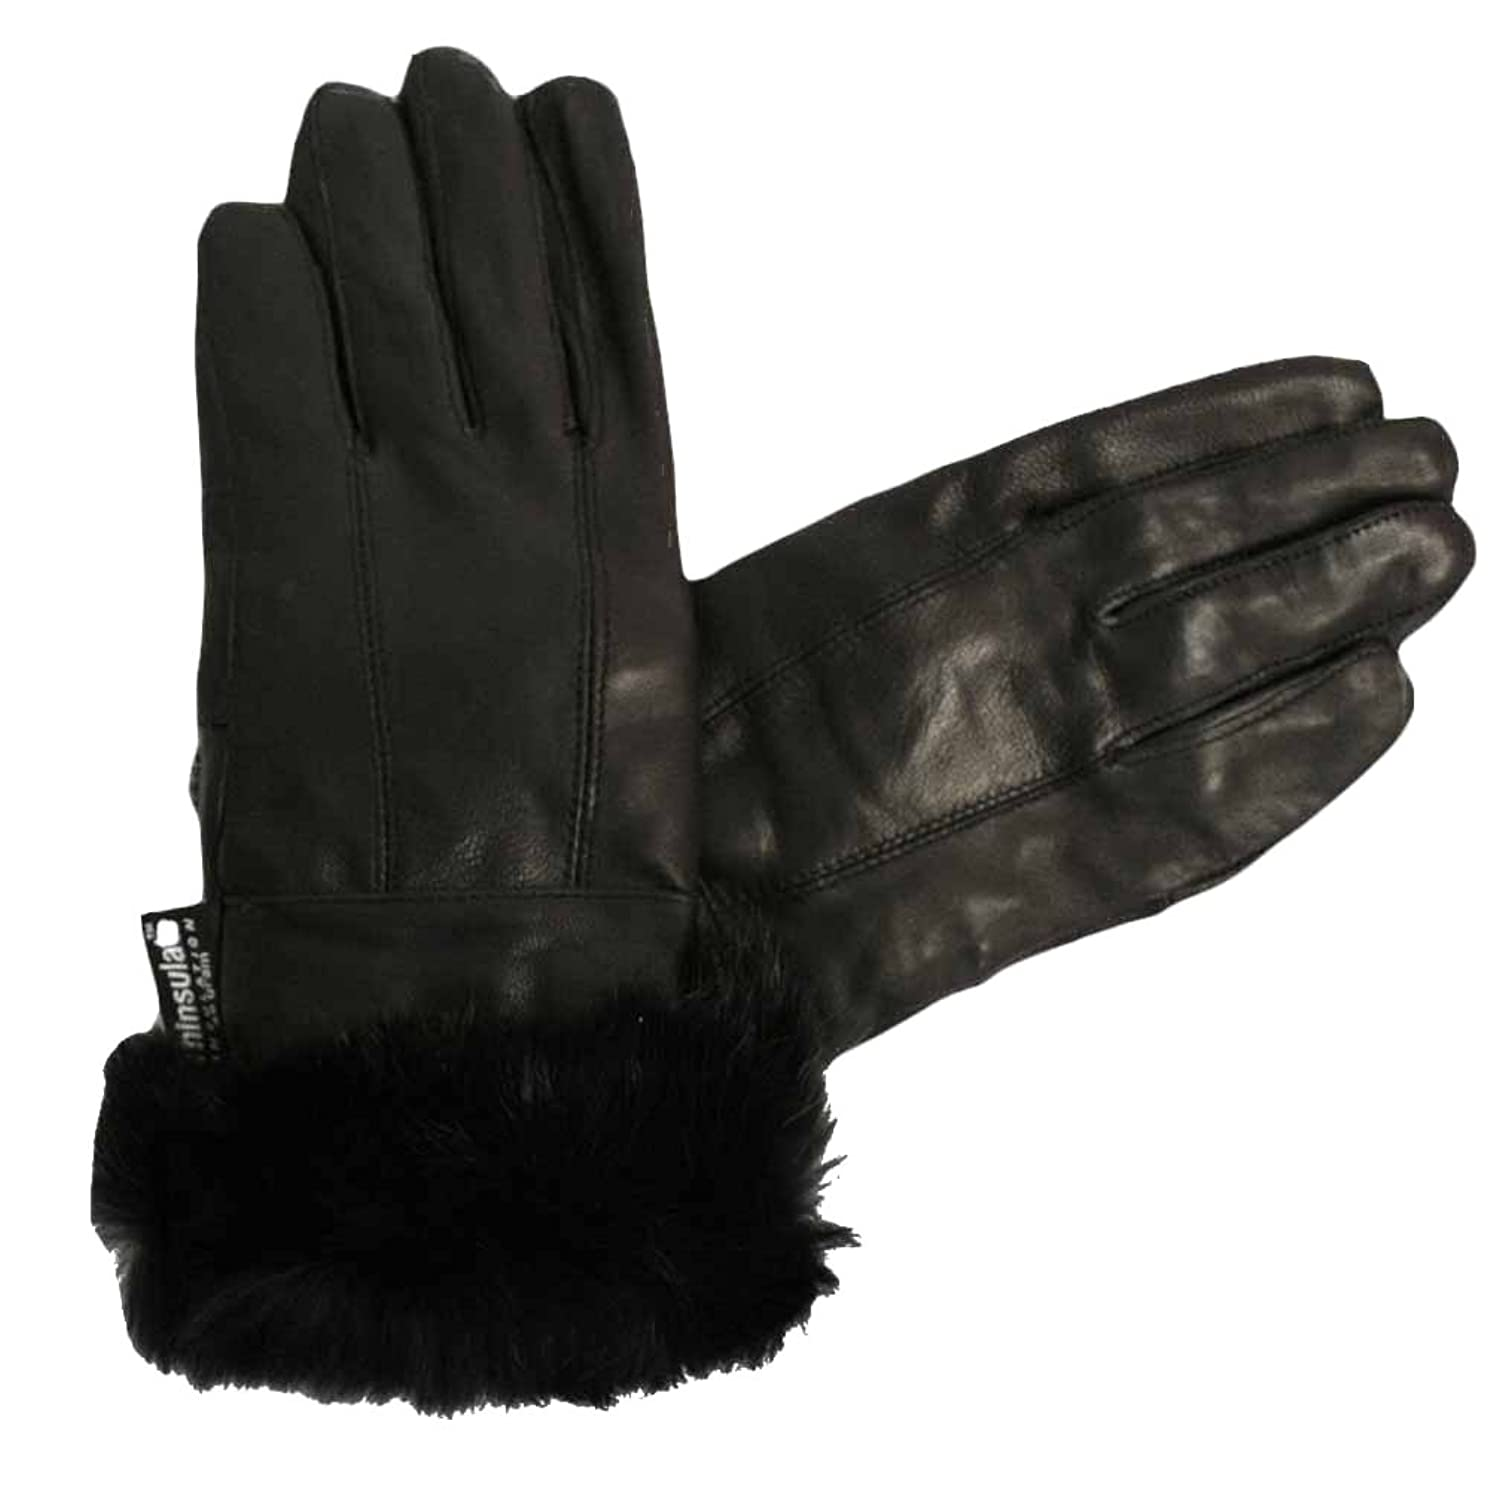 Black leather gloves with fur - Women S Black Soft Leather Gloves With Fur Trim Size Small At Amazon Women S Clothing Store Cold Weather Gloves